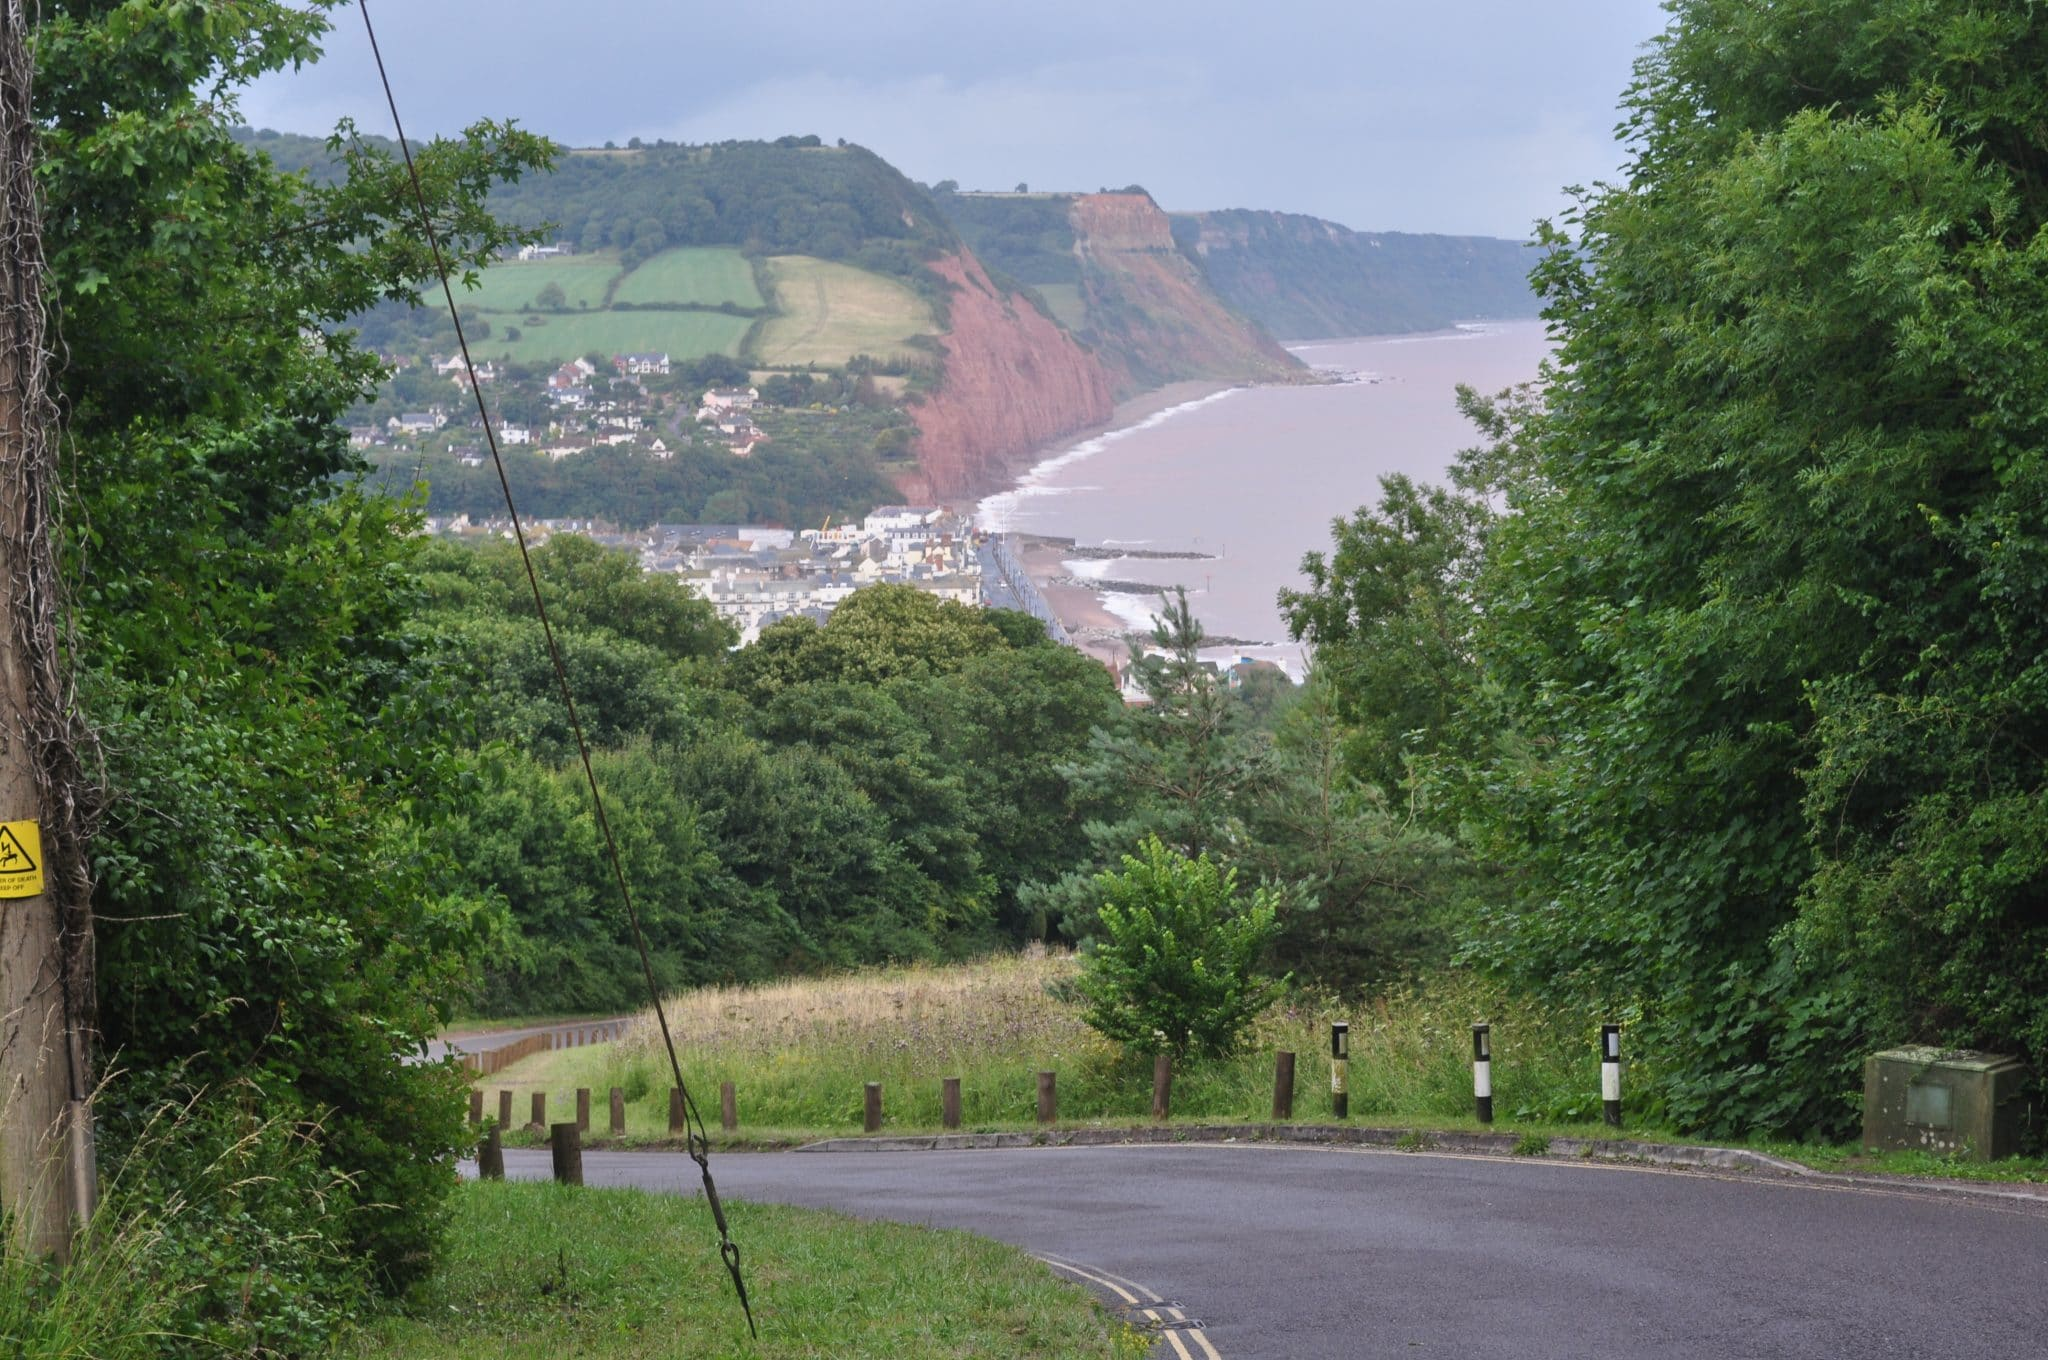 Peak Hill, Sidmouth - Copyright Lewis Clarke